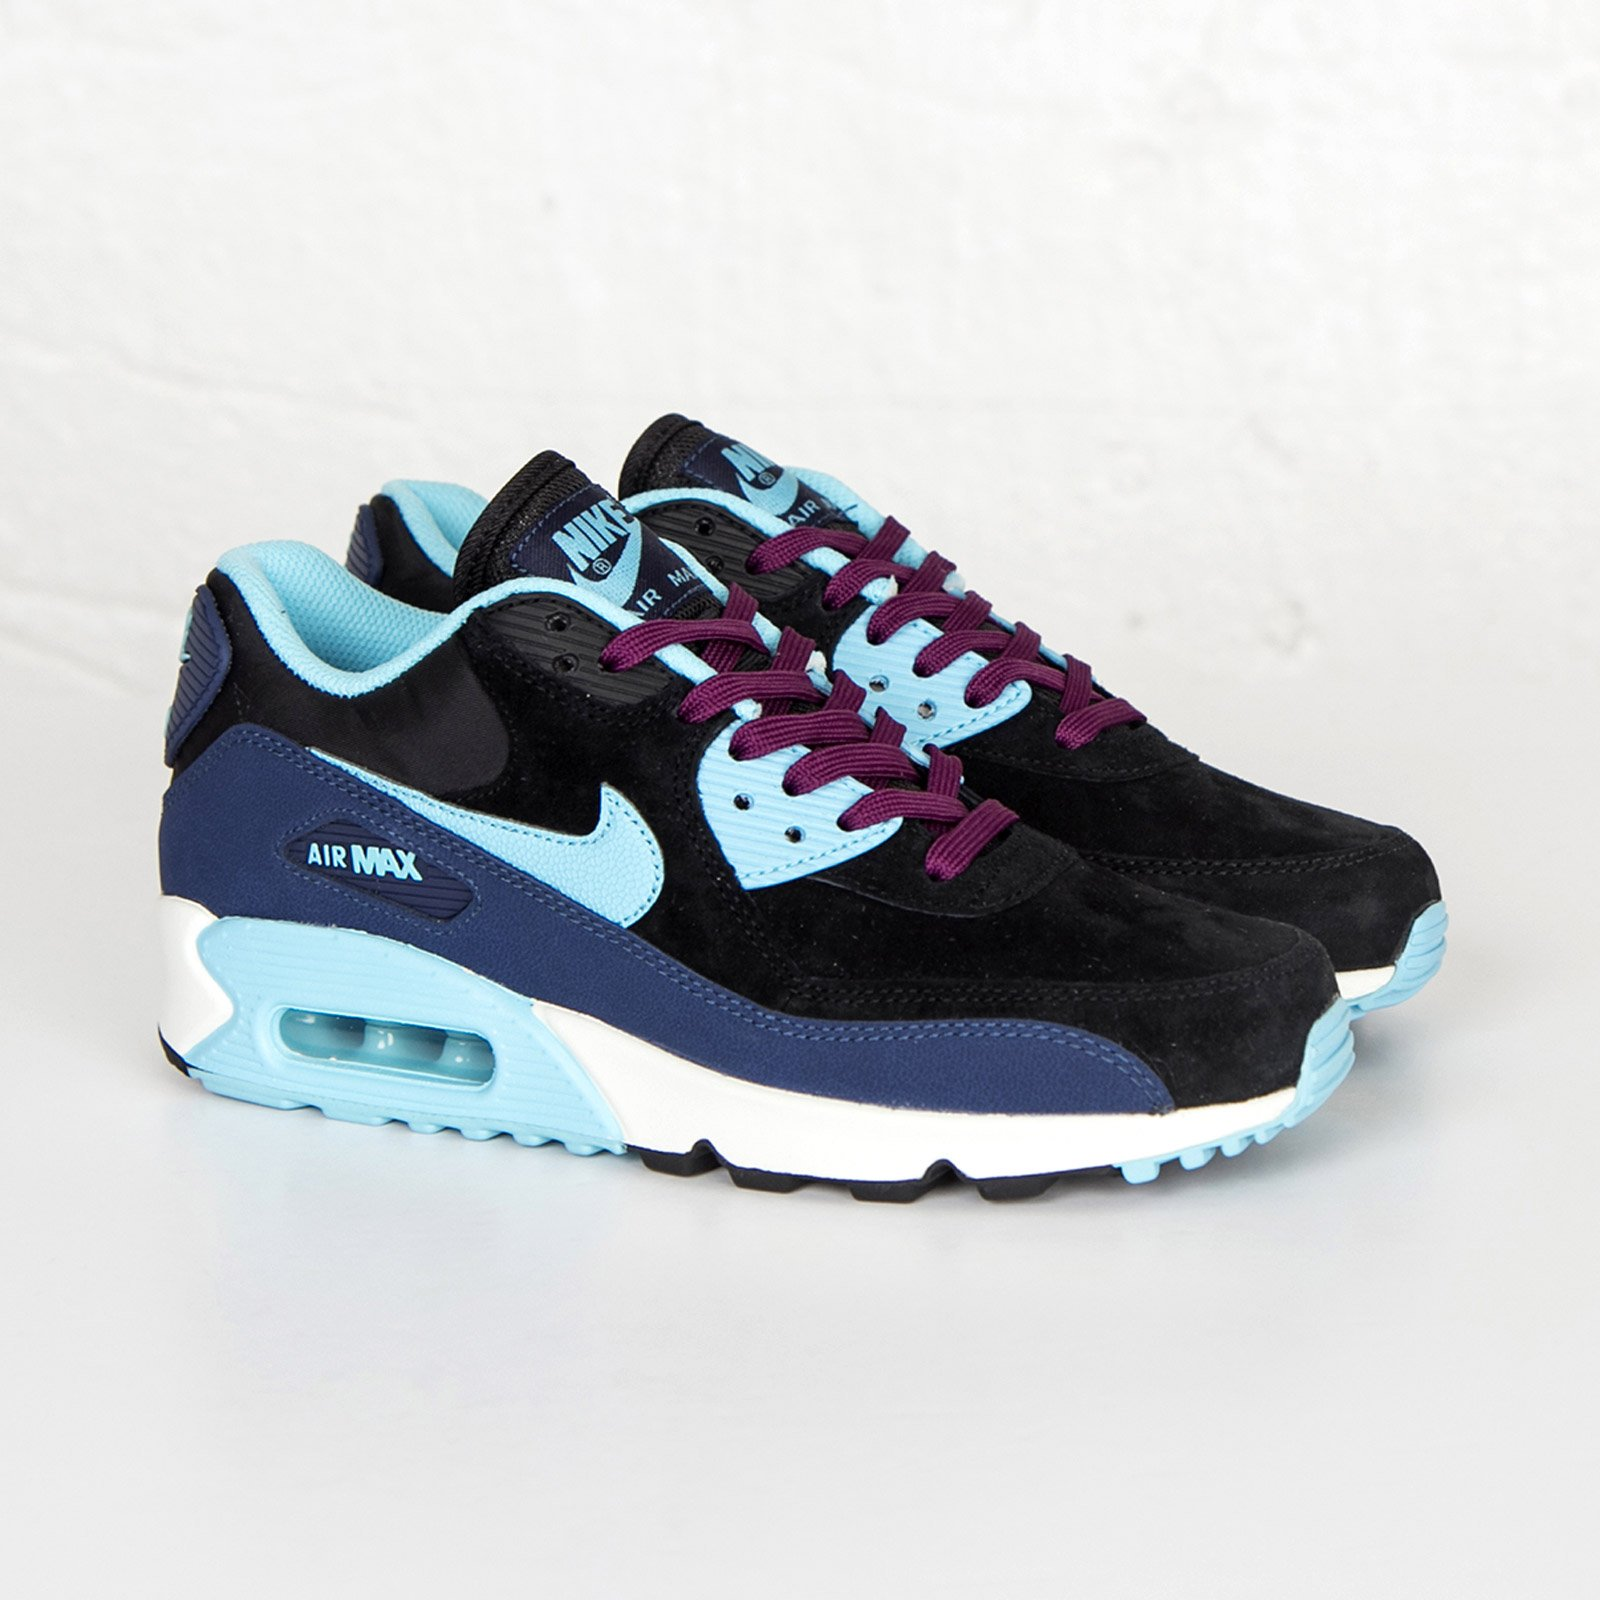 Nike Wmns Air Max 90 Leather - 768887-400 - Sneakersnstuff ... 1175be6004b